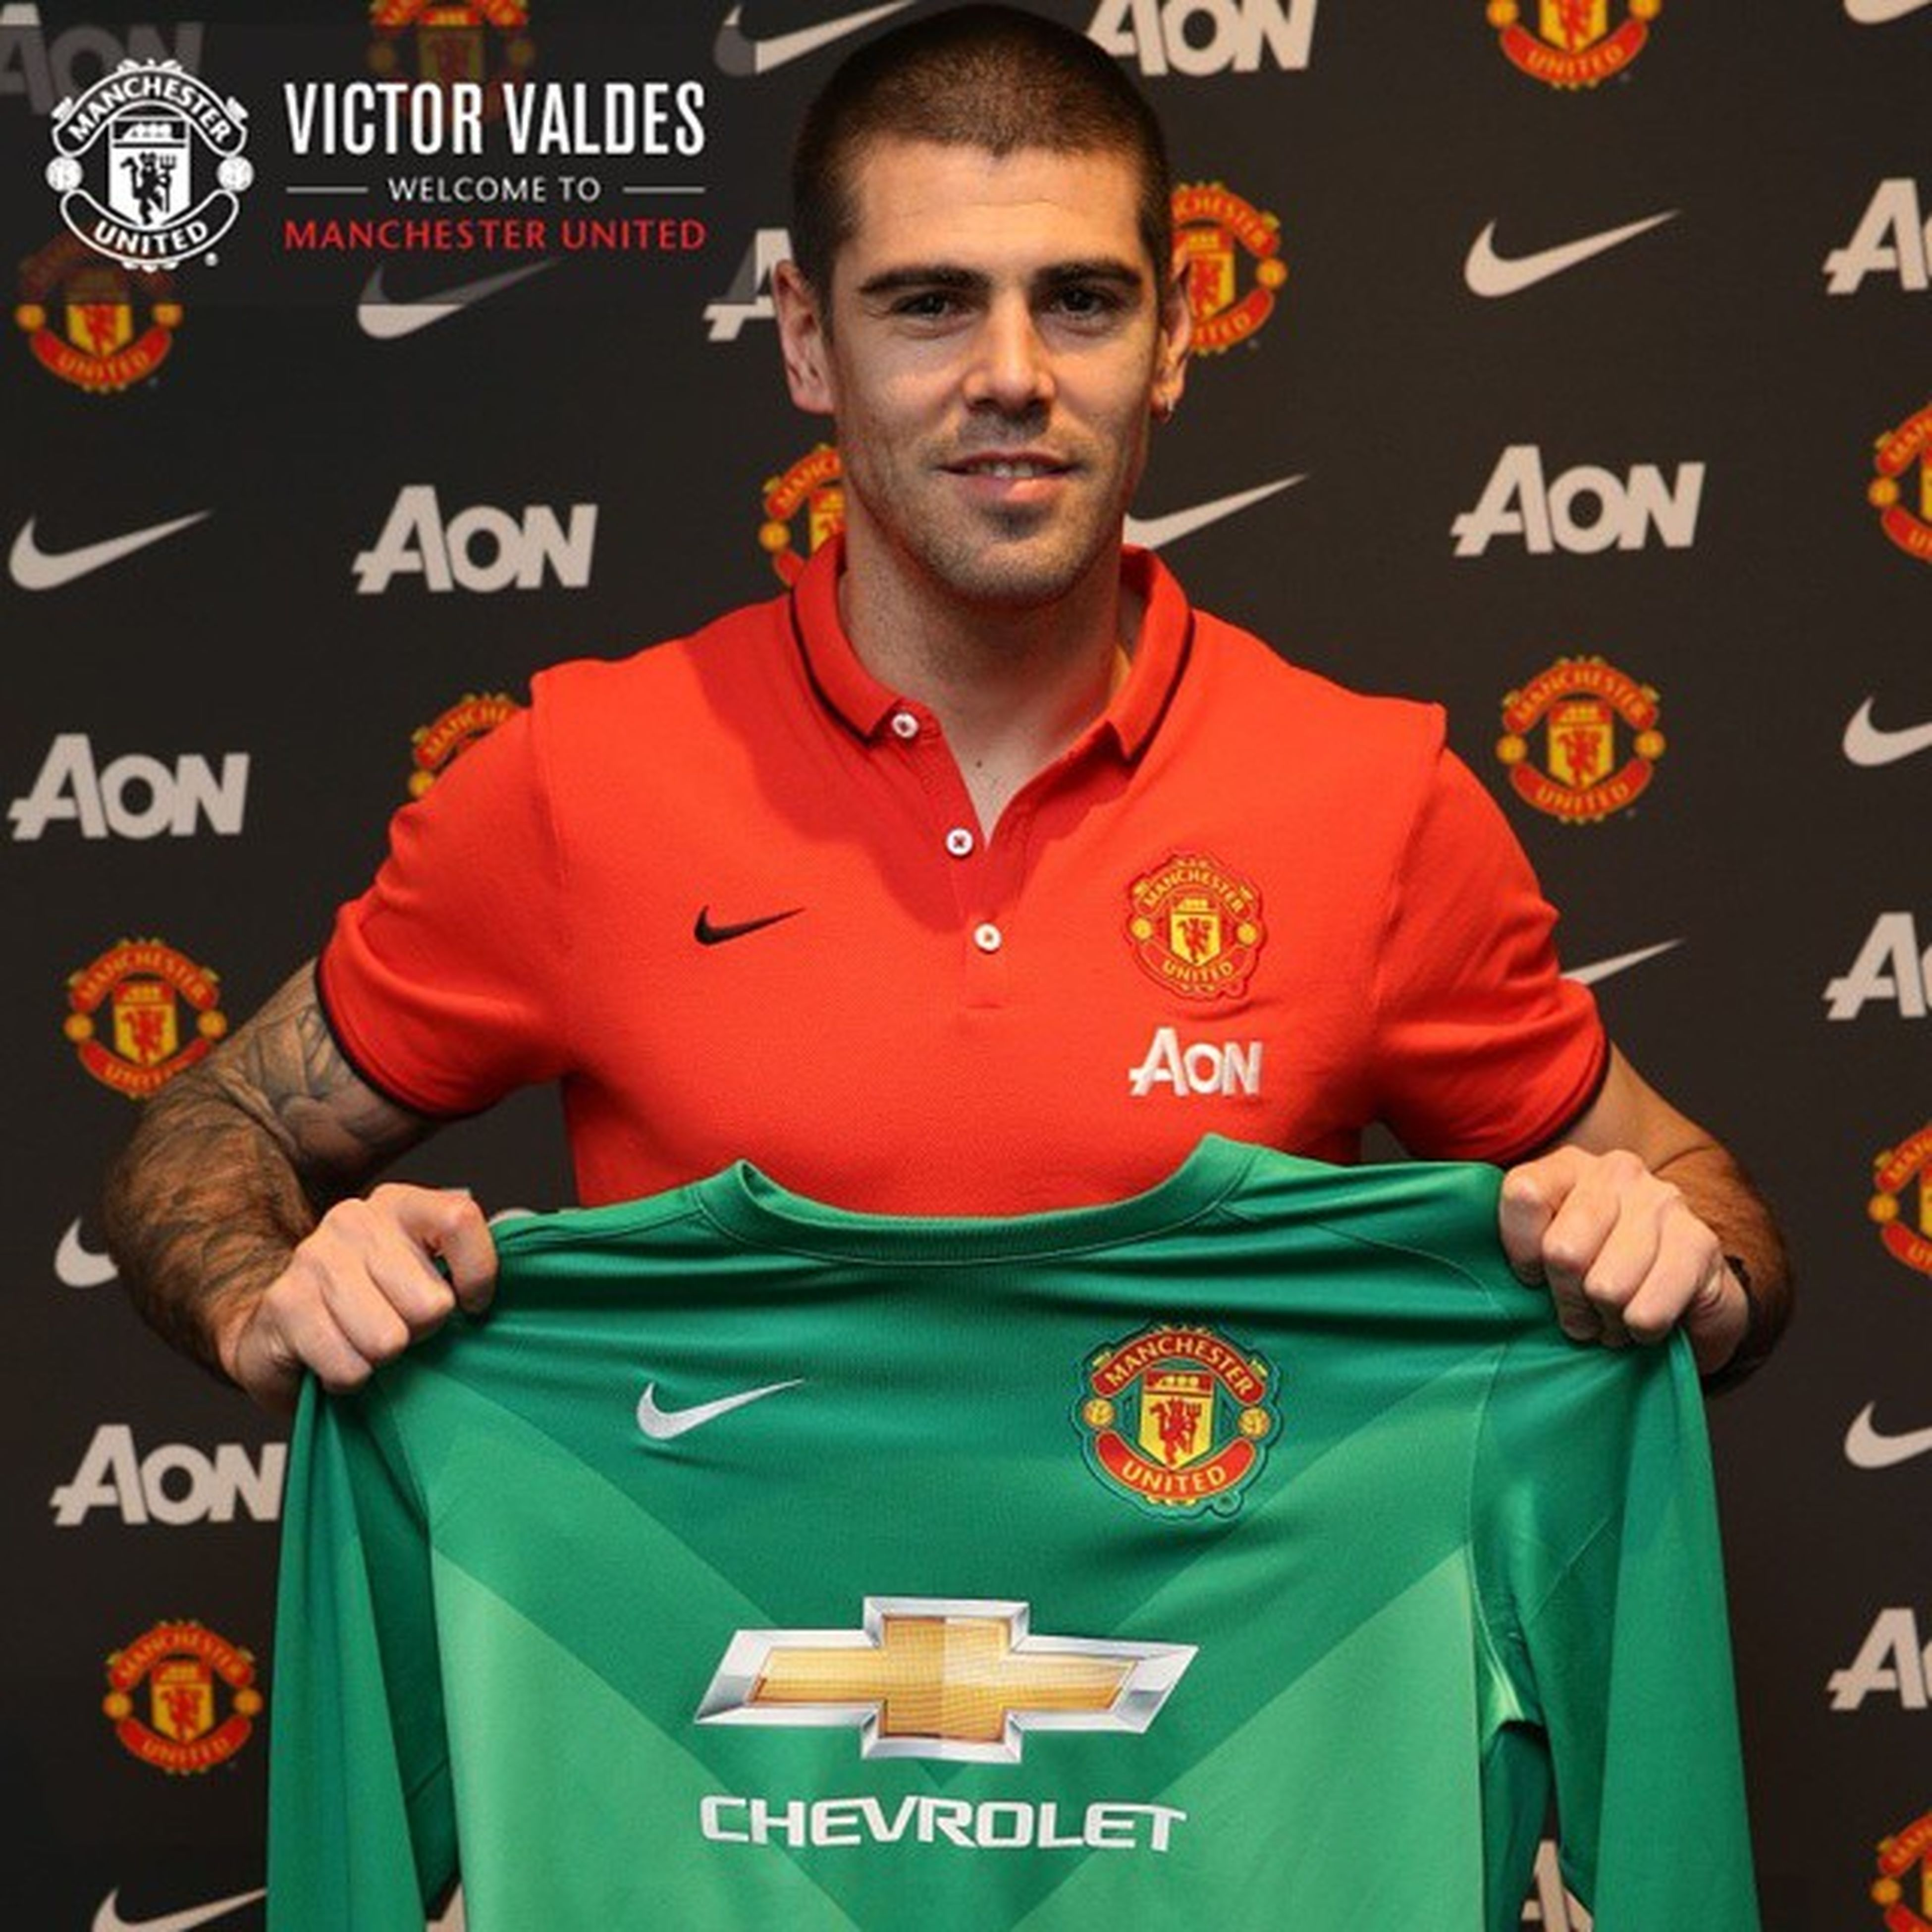 It's official everybody, welcome to @manchesterunited Victor Valdes. Mufc GGMU JanuaryTransfer Manchesterunited ManUtd Gloryglorymanutd .